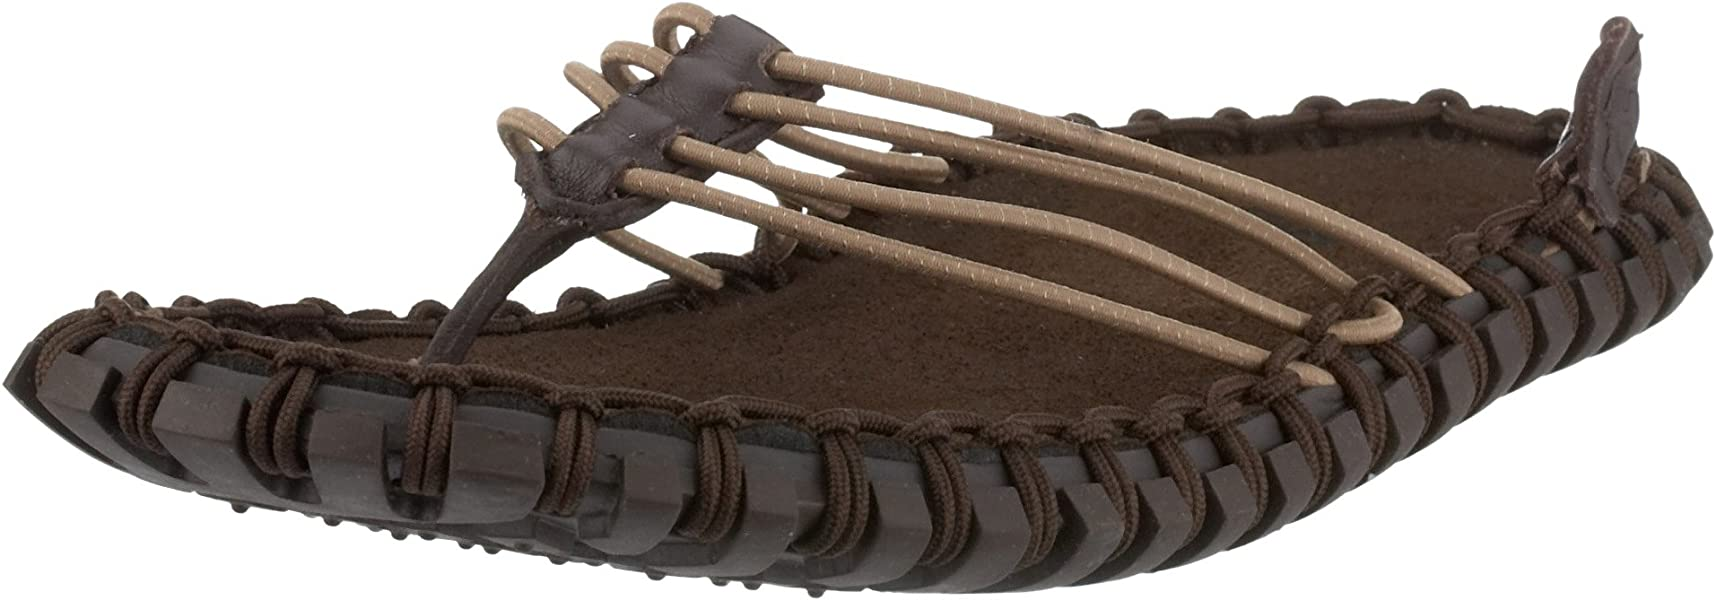 a528c5a044c1 Nike Valkyrie CI Womens Sandals Summer Shoes-Brown-6